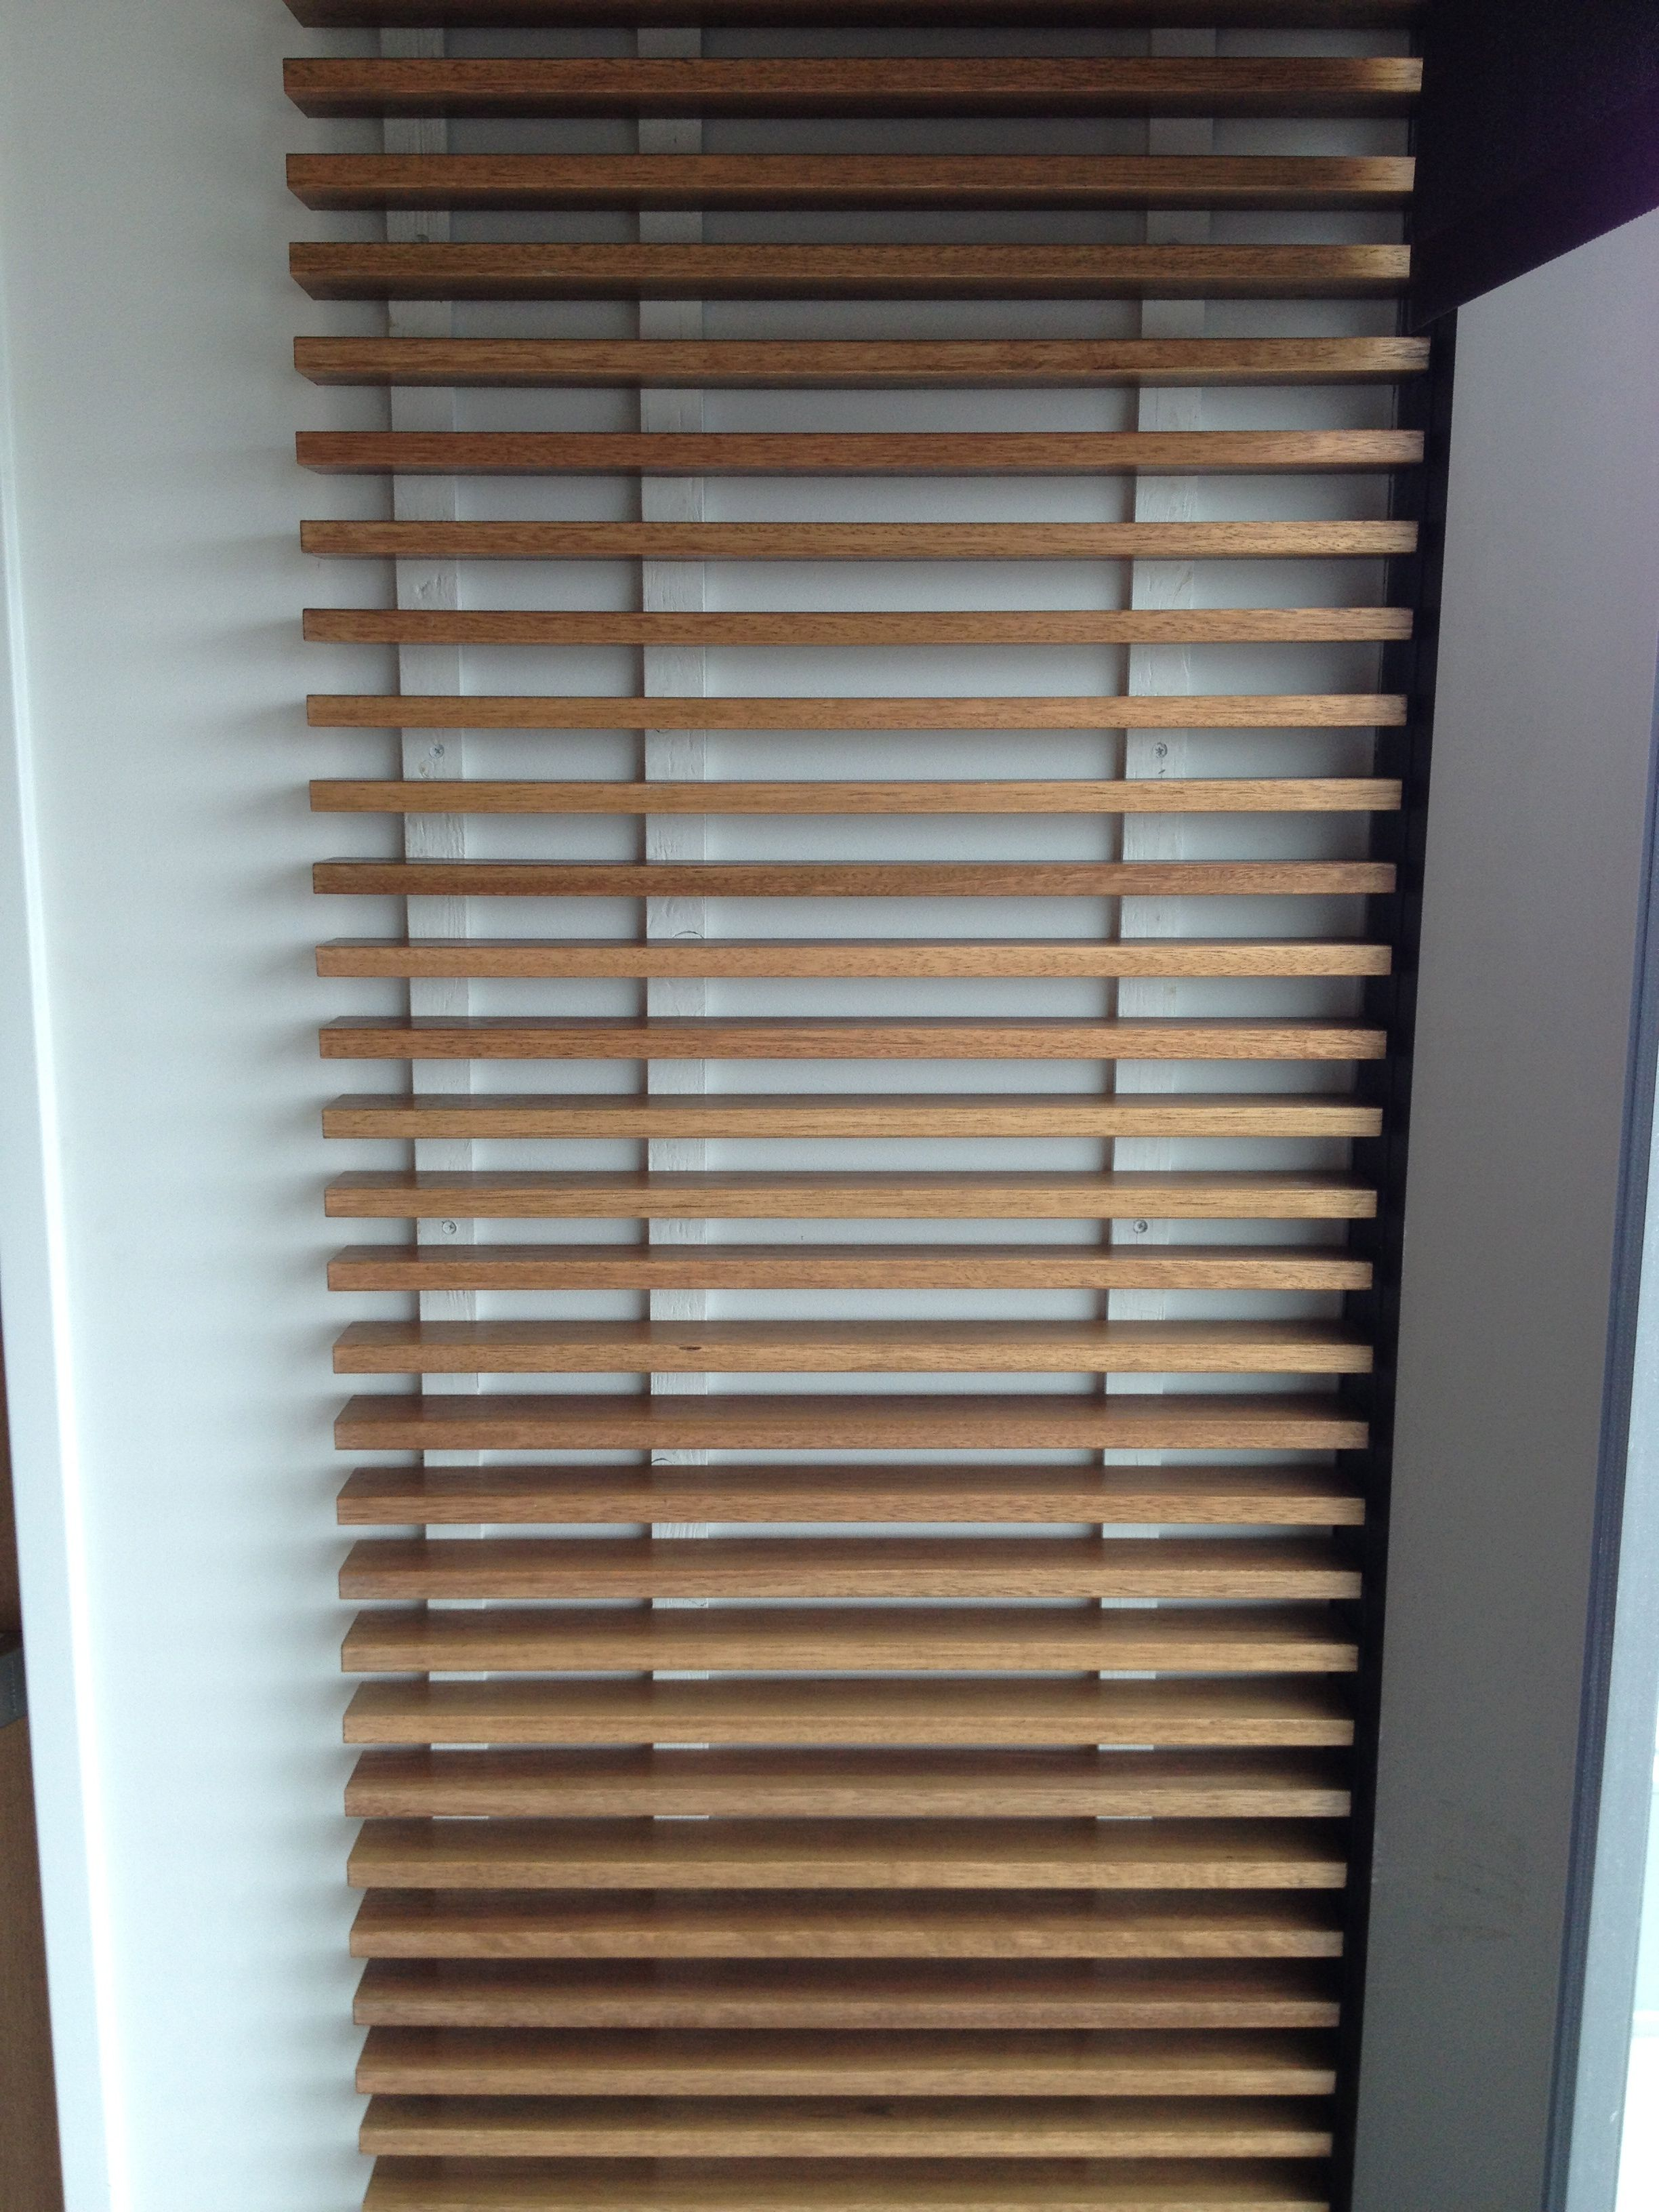 wood slat wall wood slat walls Pinterest